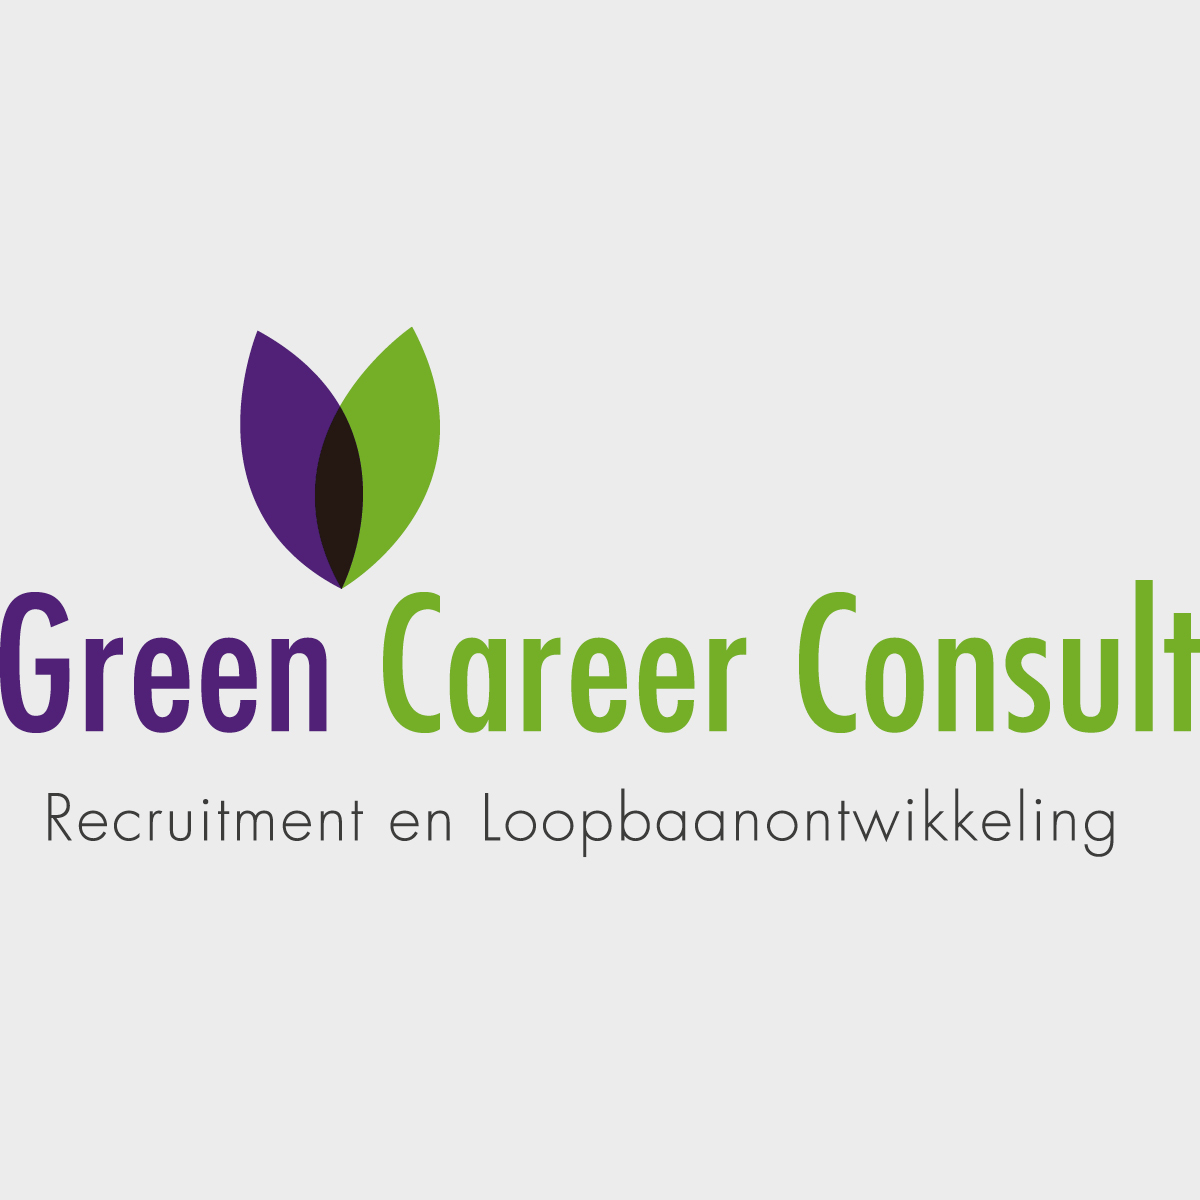 Green Career Consult | Creative Digital Agency Puntkomma Nijmegen